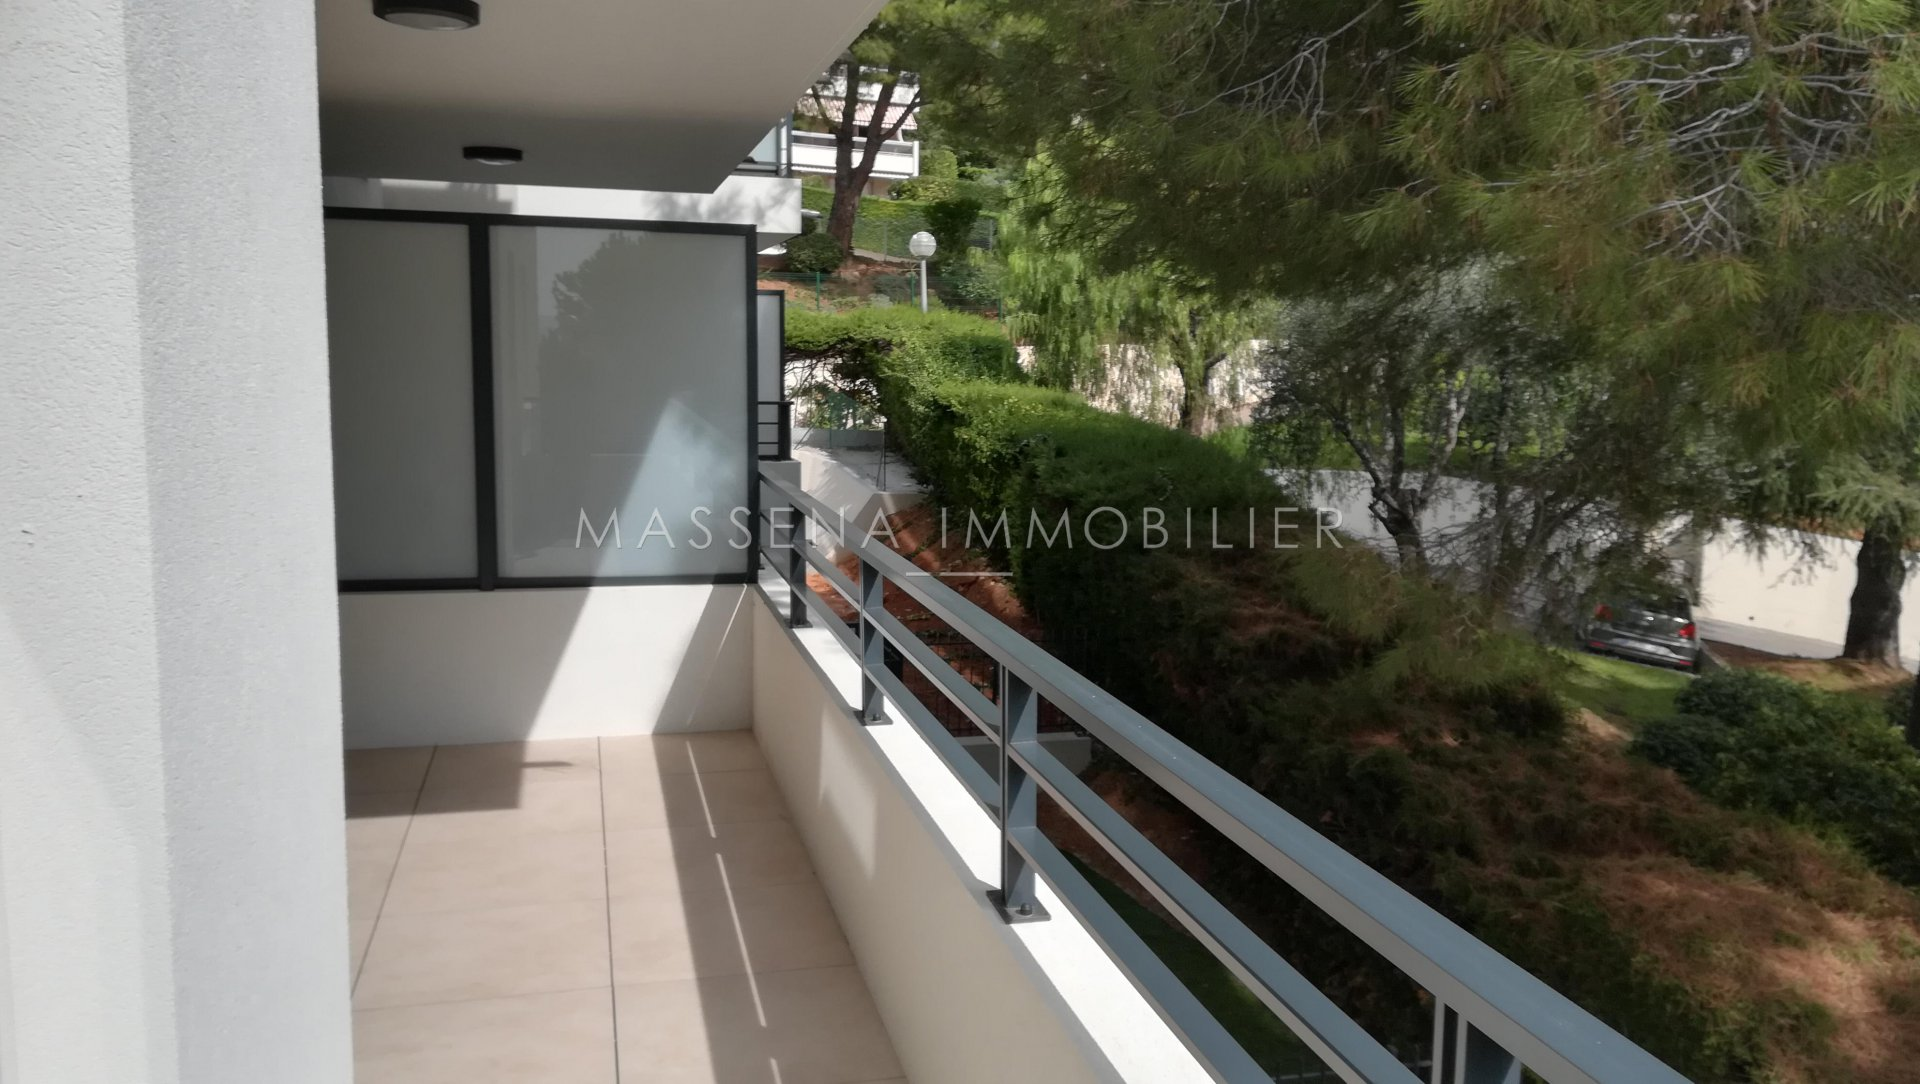 Corniche Fleurie - 1-bed apartment with terrace